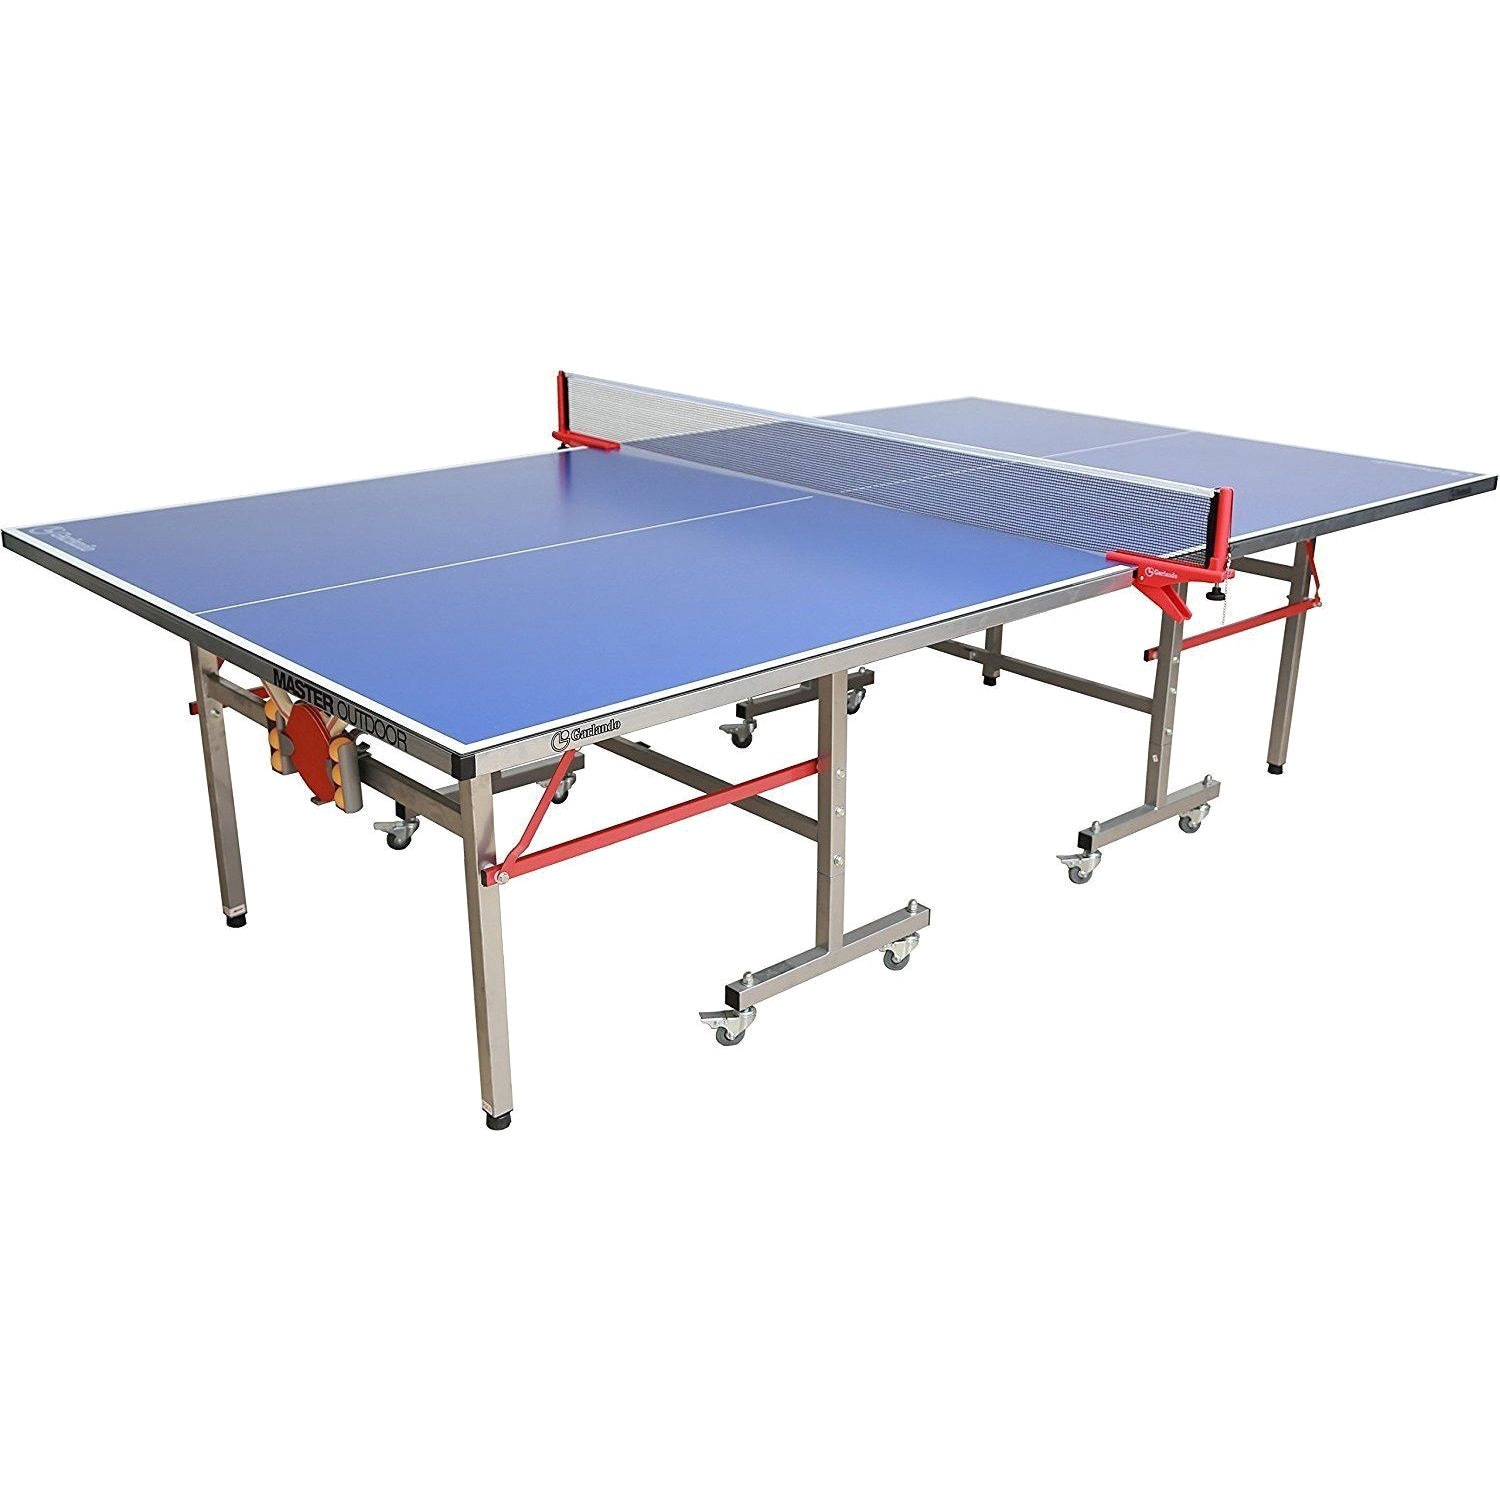 Garlando Master Outdoor Full Size Imp 21 365 Table Tennis Ping Pong Table Blue